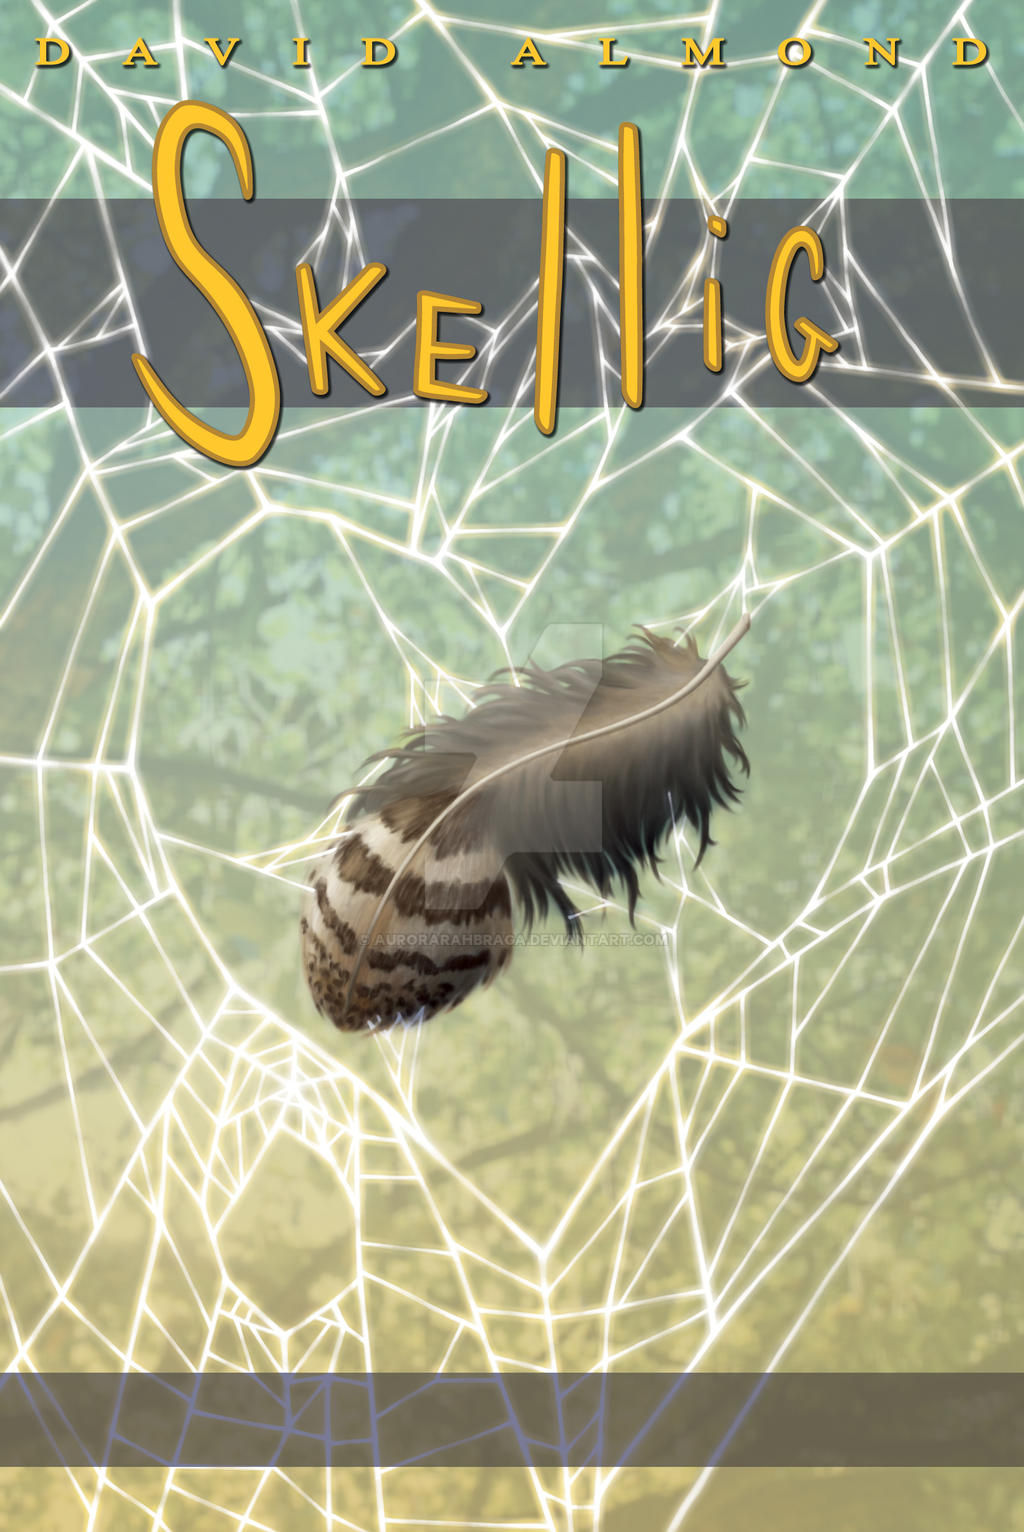 Book Cover Art Size : Skellig book cover by aurorarahbraga on deviantart